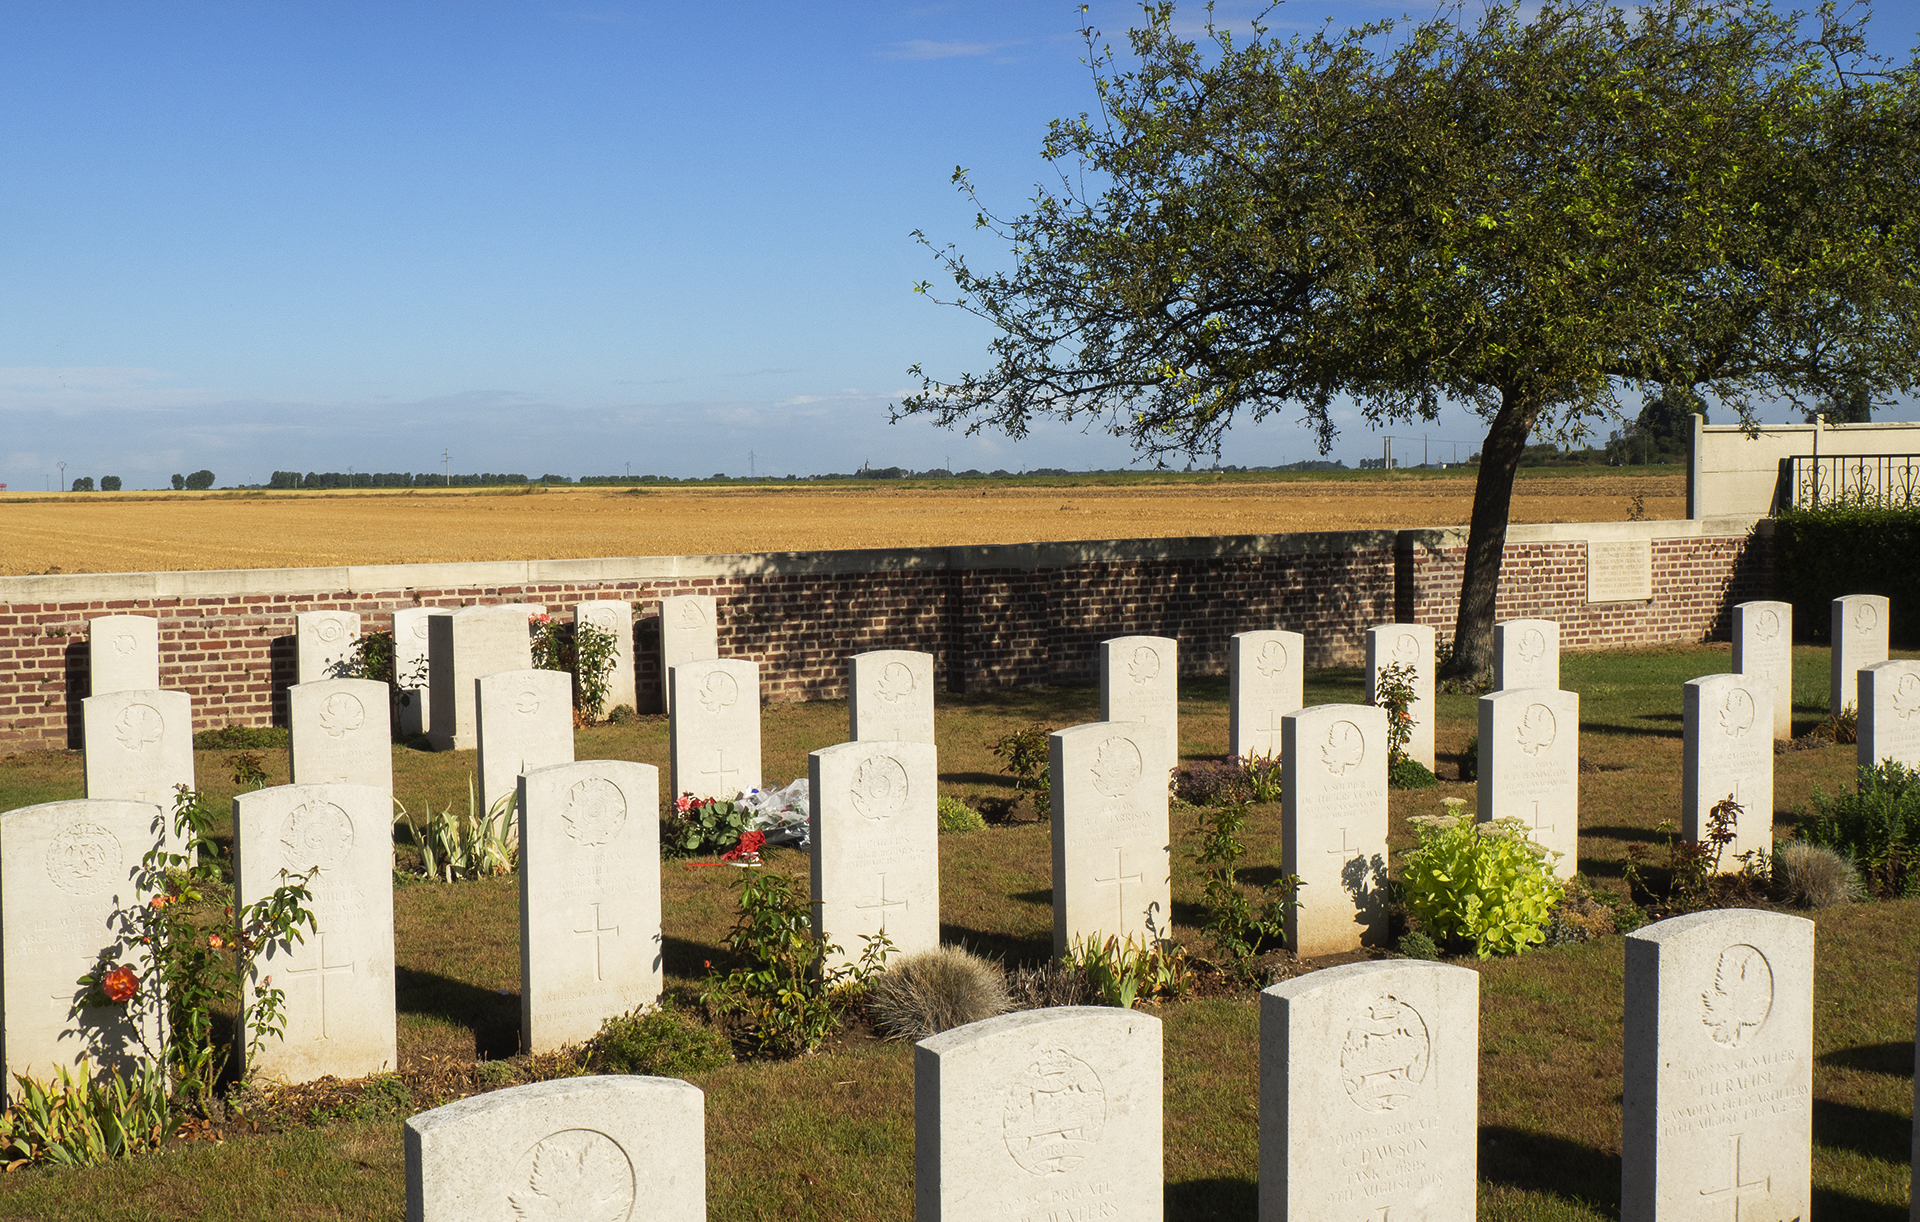 The Rosières Communal Extension Cemetery has 400+ casualties from World War I of which 283 soldiers are identified and the remaining unknown soldiers.